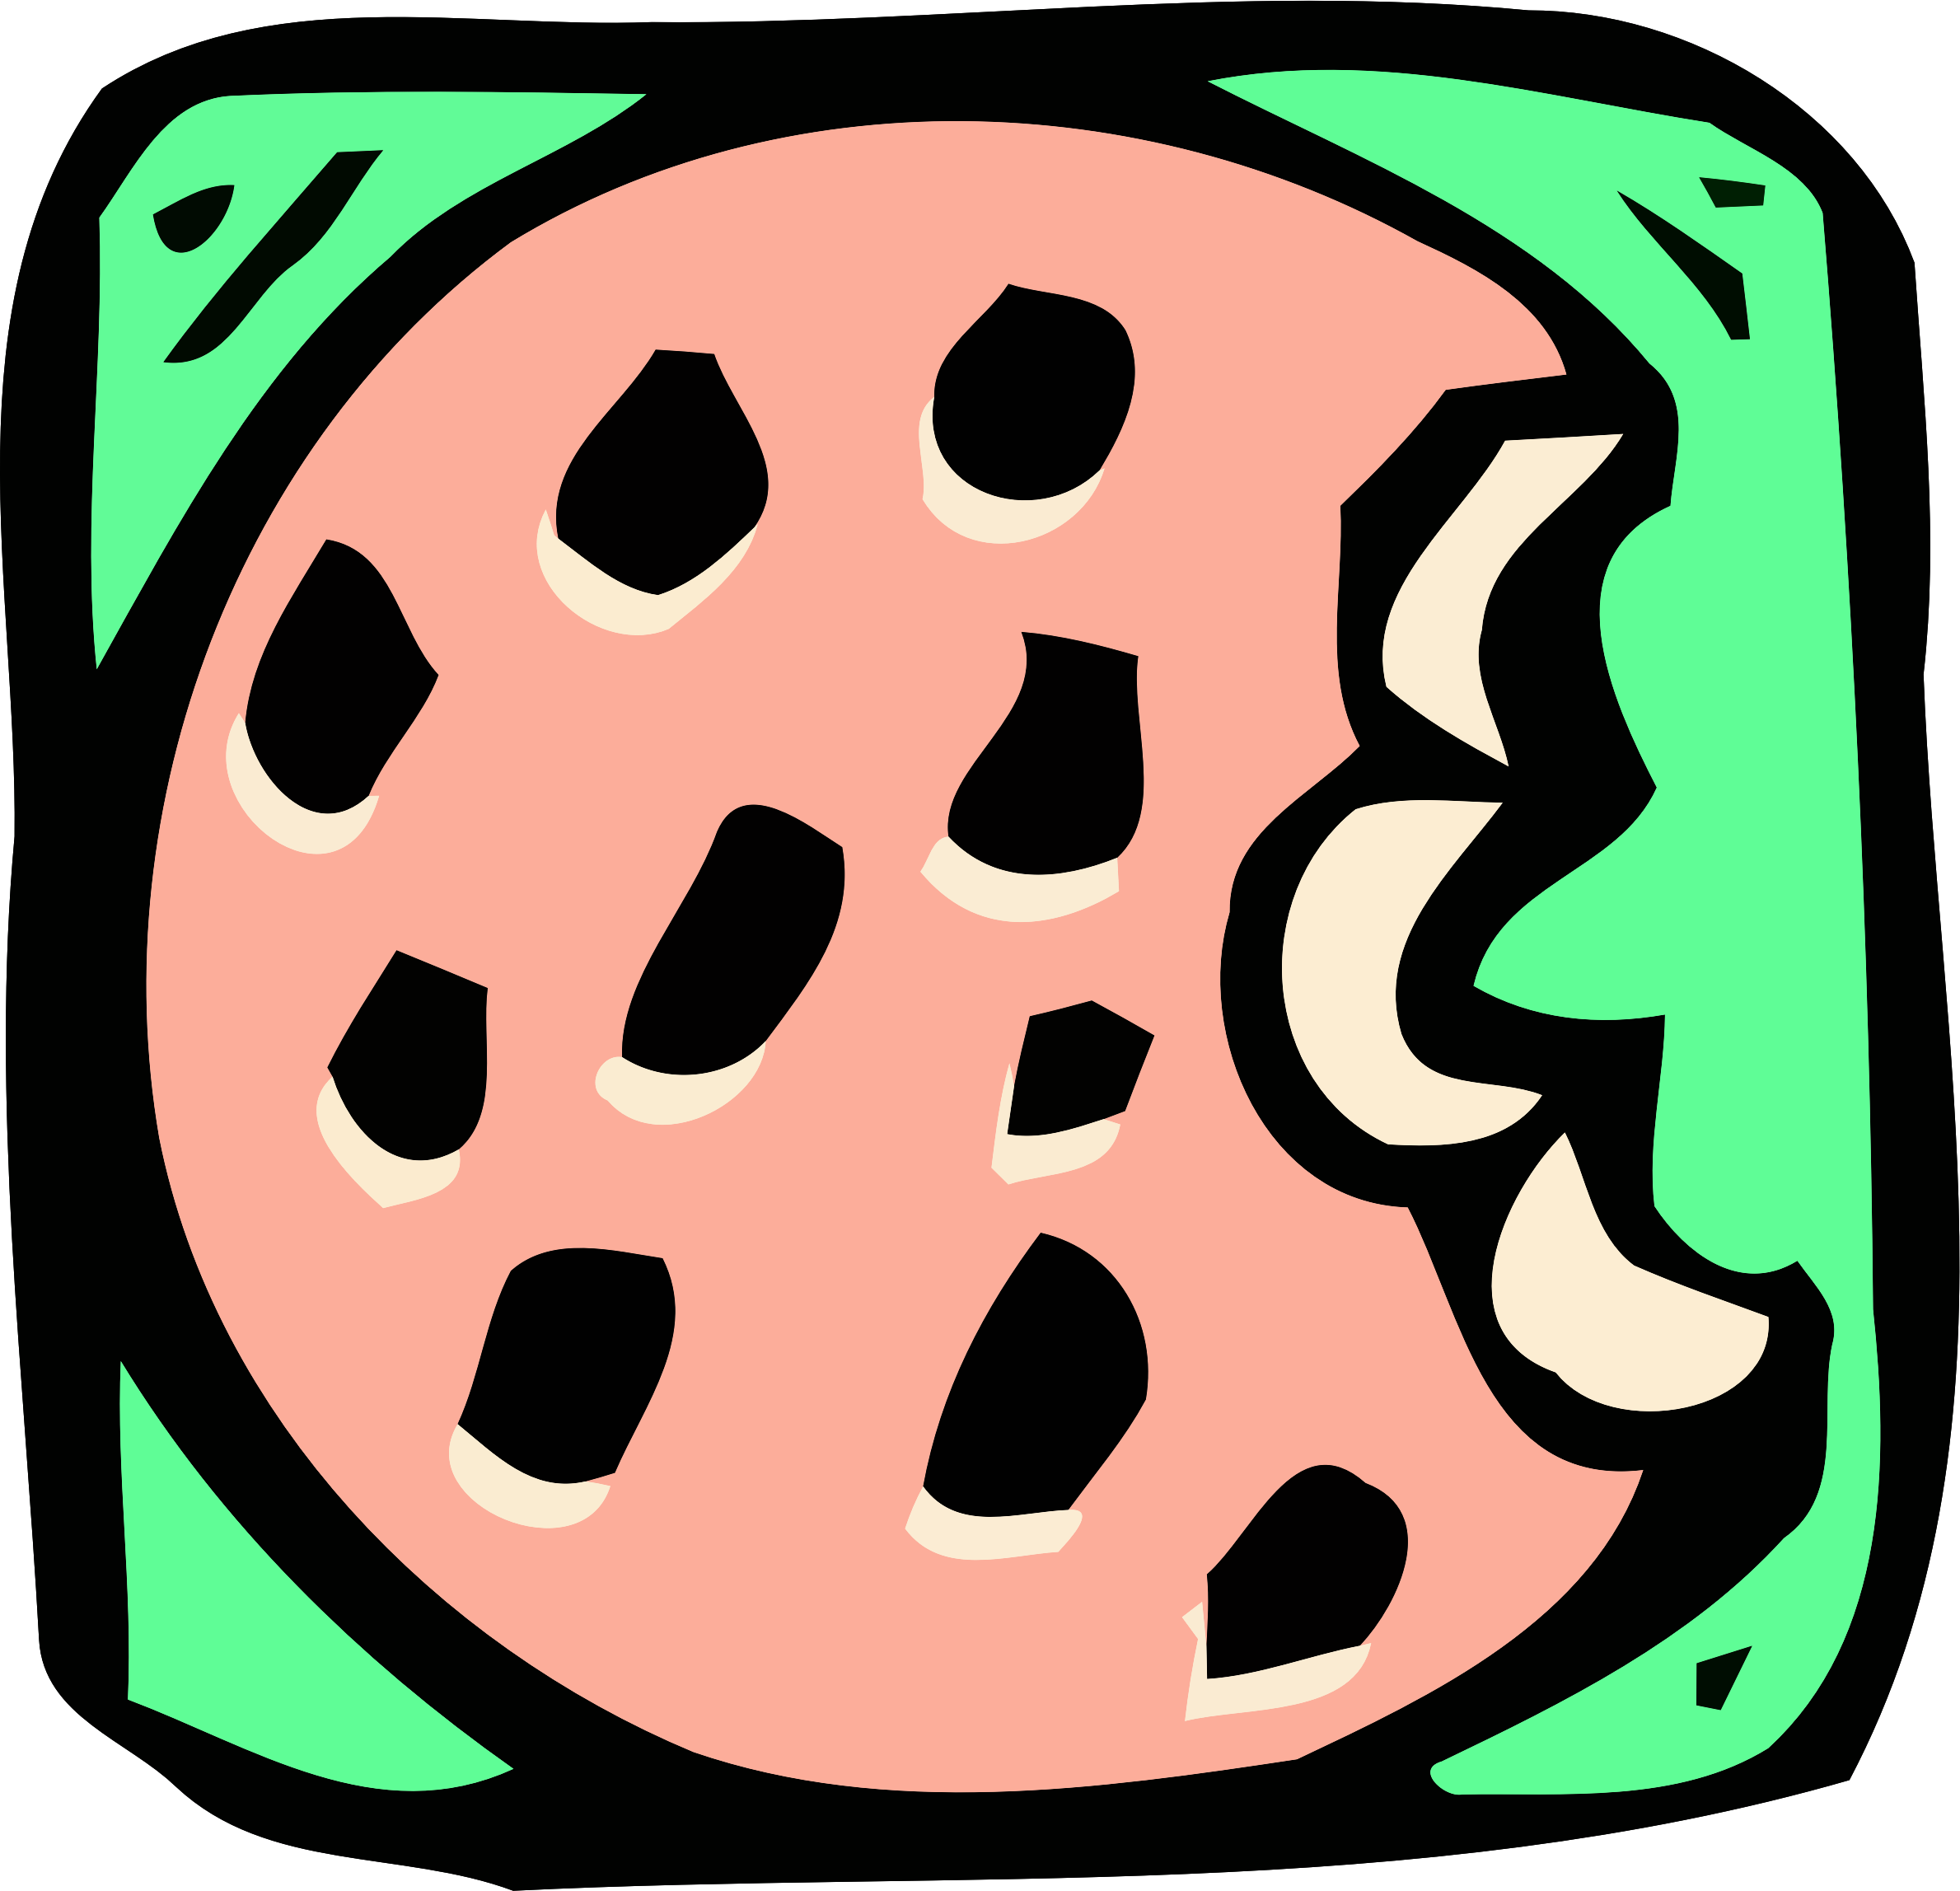 Food and drink icon - cookie by Firkin